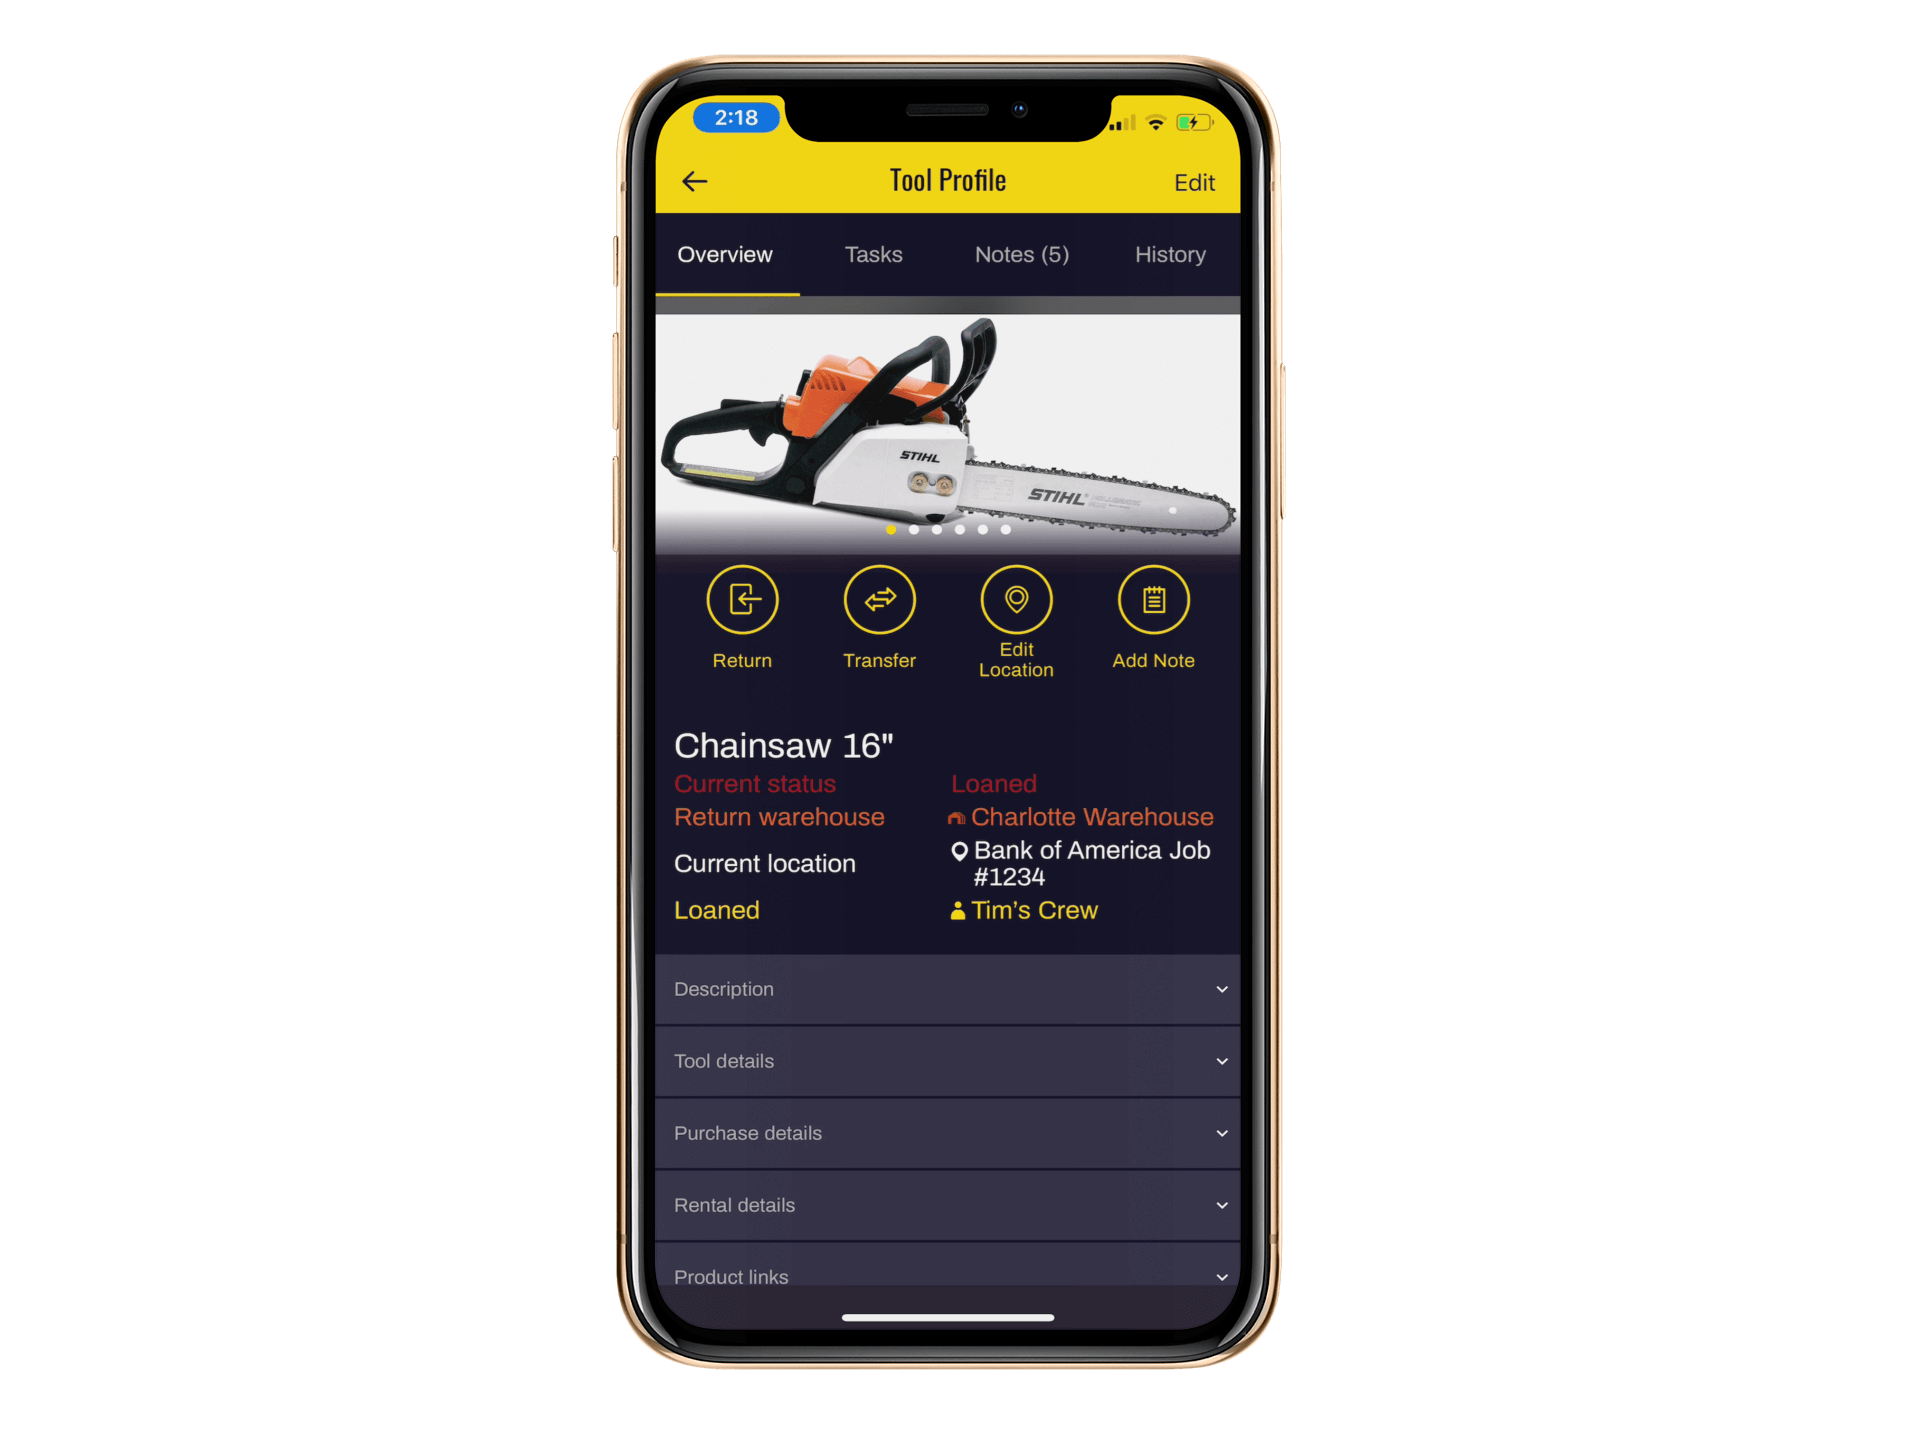 All tool details are available on mobile devices. Whether an Apple or Android phone or tablet, all tool information will be easy to find.